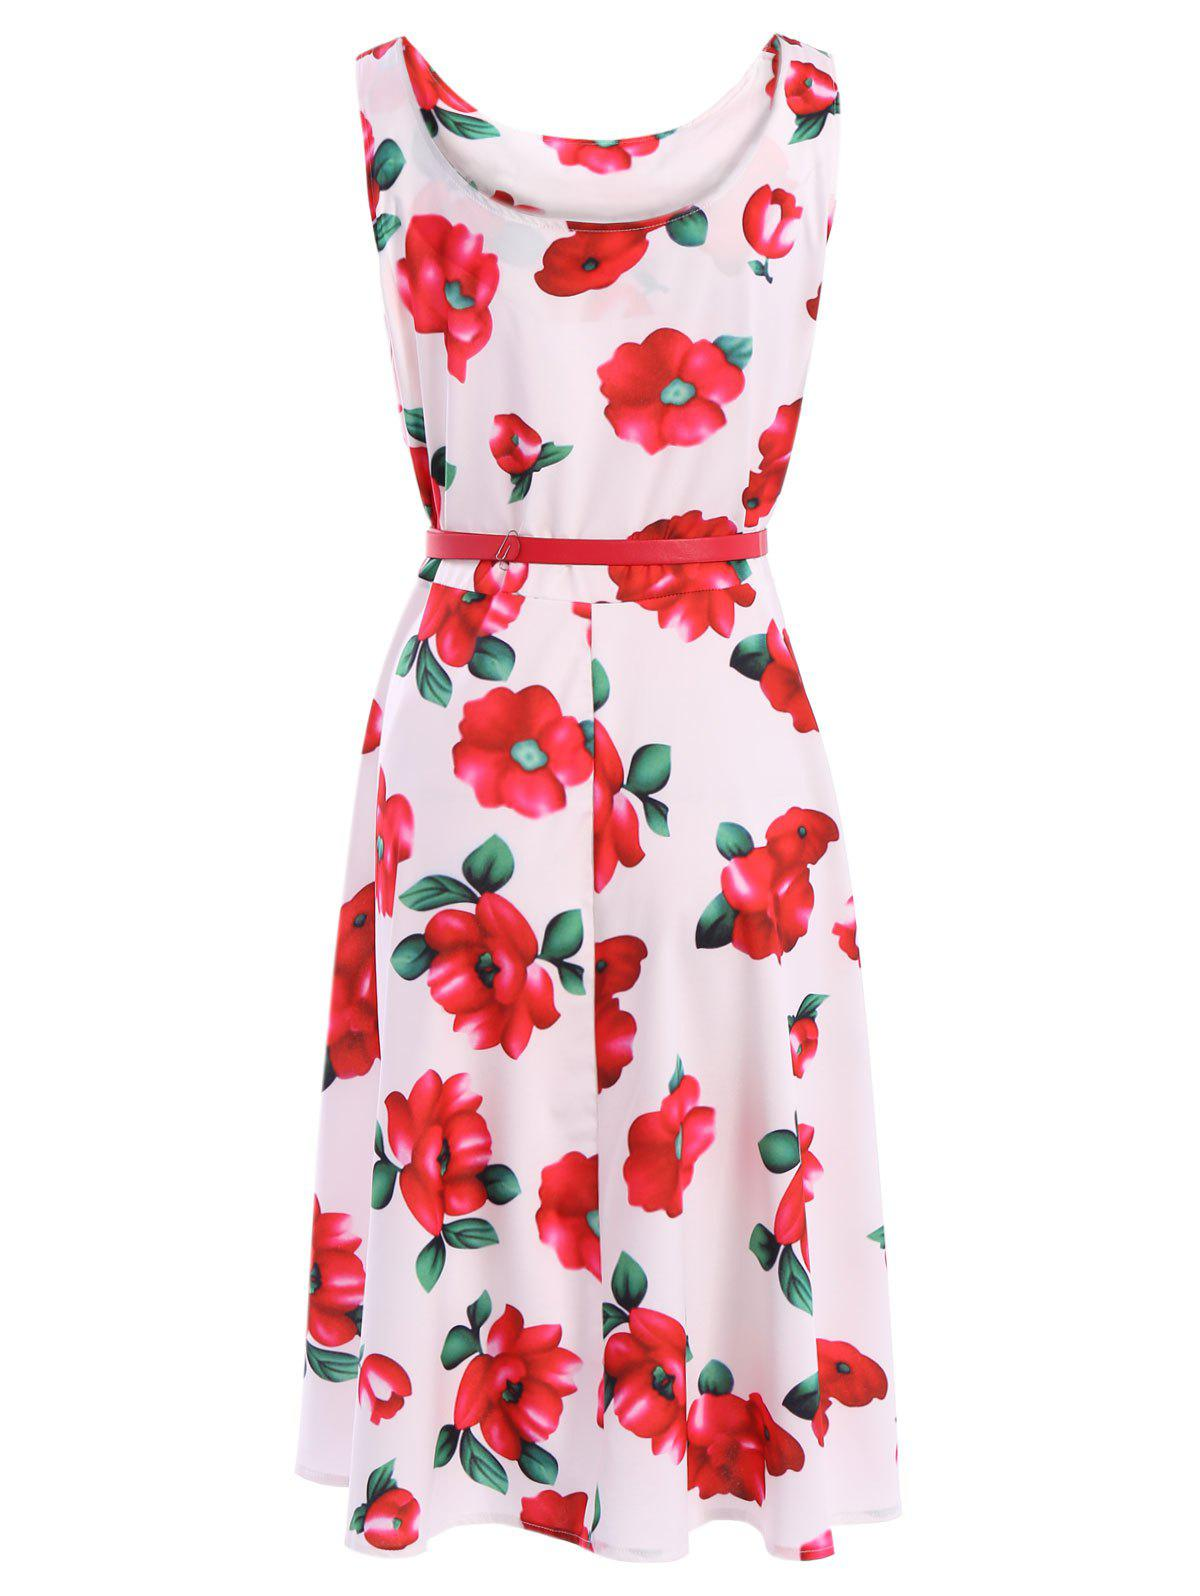 Vintage Women's Scoop Neck Sleeveless Floral Print Belted Flare Dress - RED XL